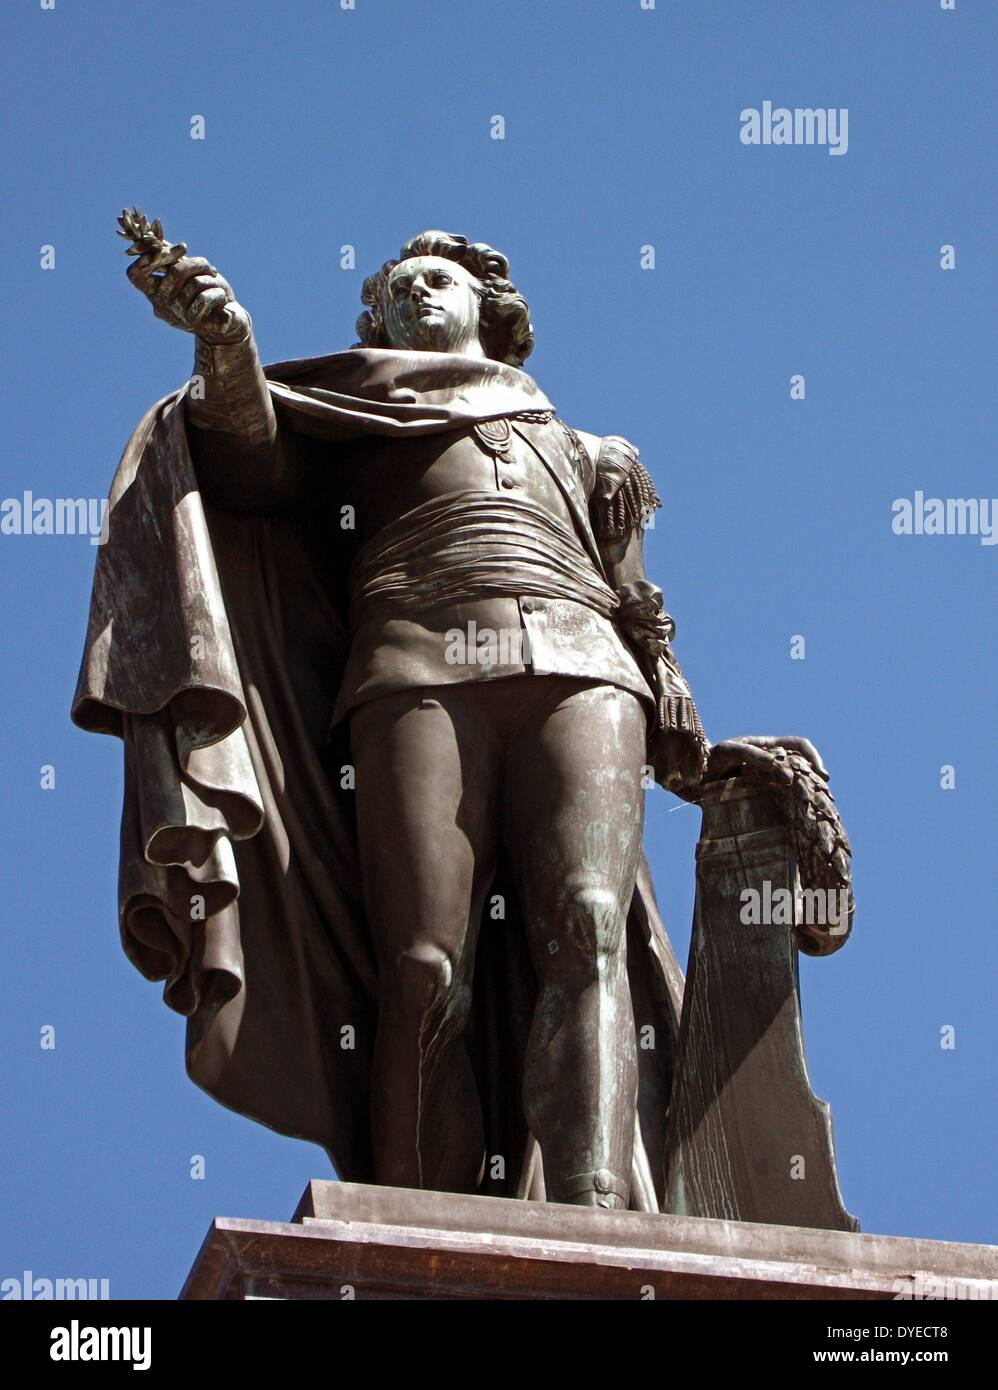 Statue of King Gustav the III 1746 – 29 March 1792 ) was King of Sweden from 1771 until his death - Stock Image